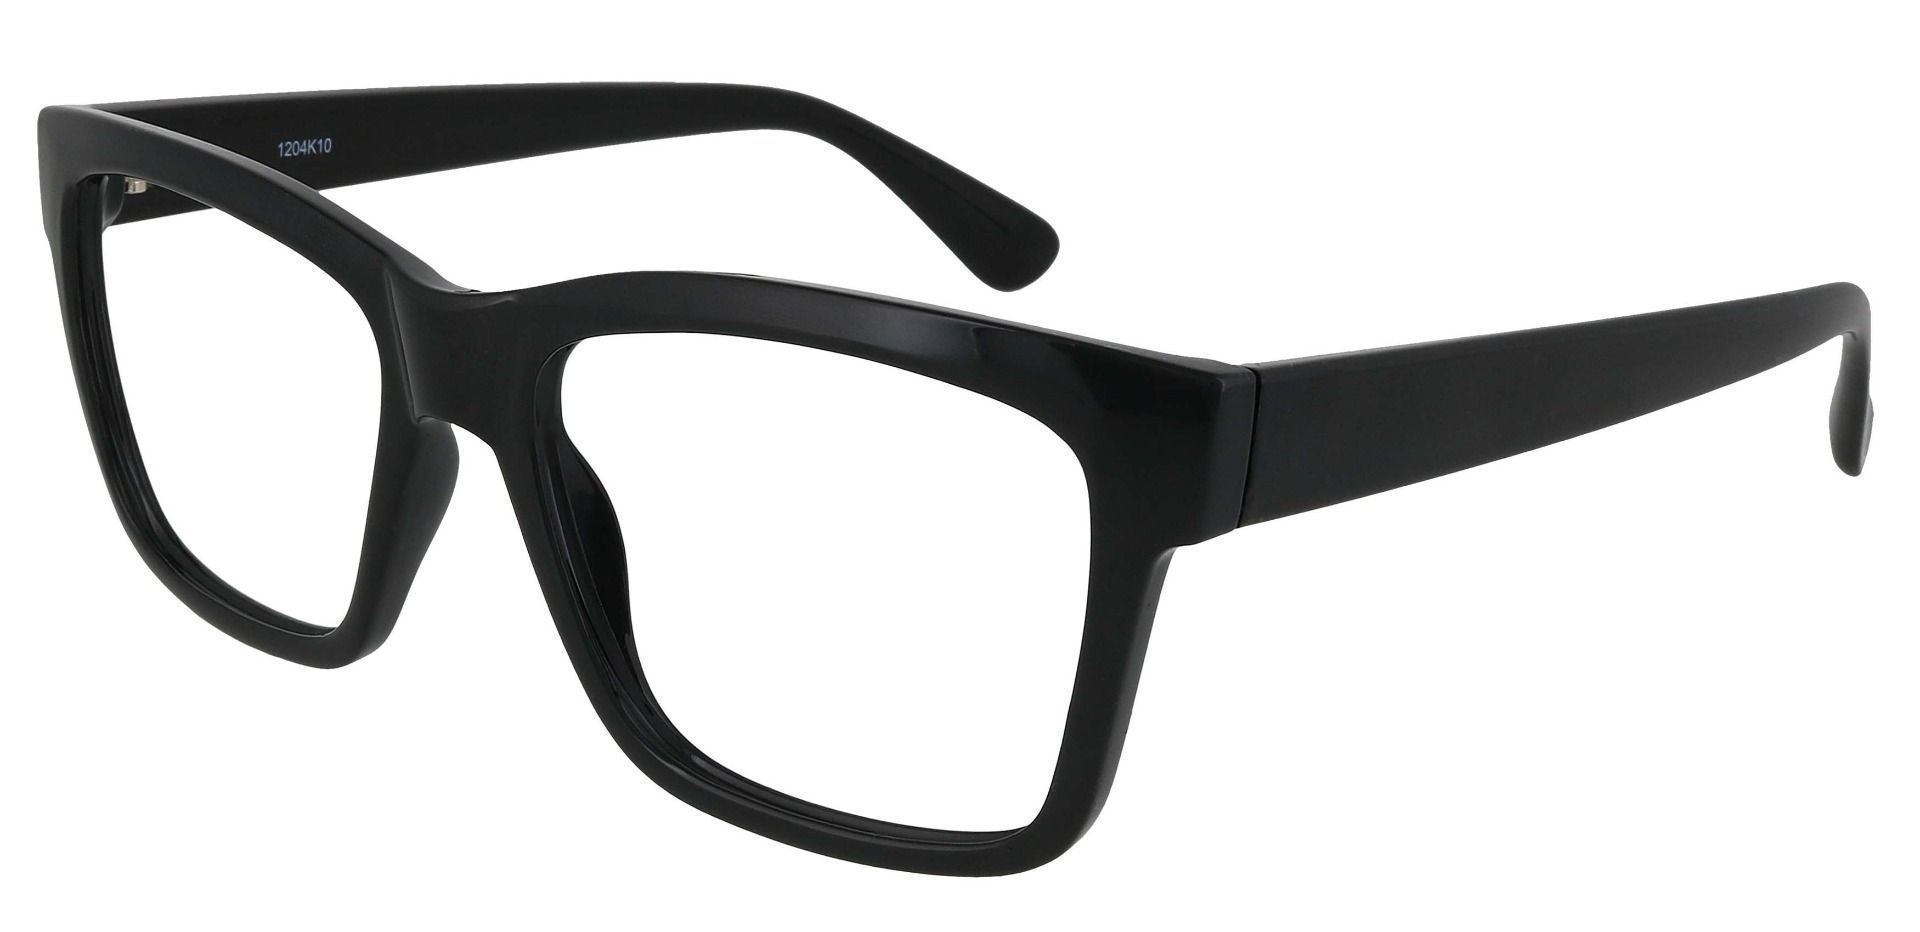 Brinley Square Reading Glasses - Black